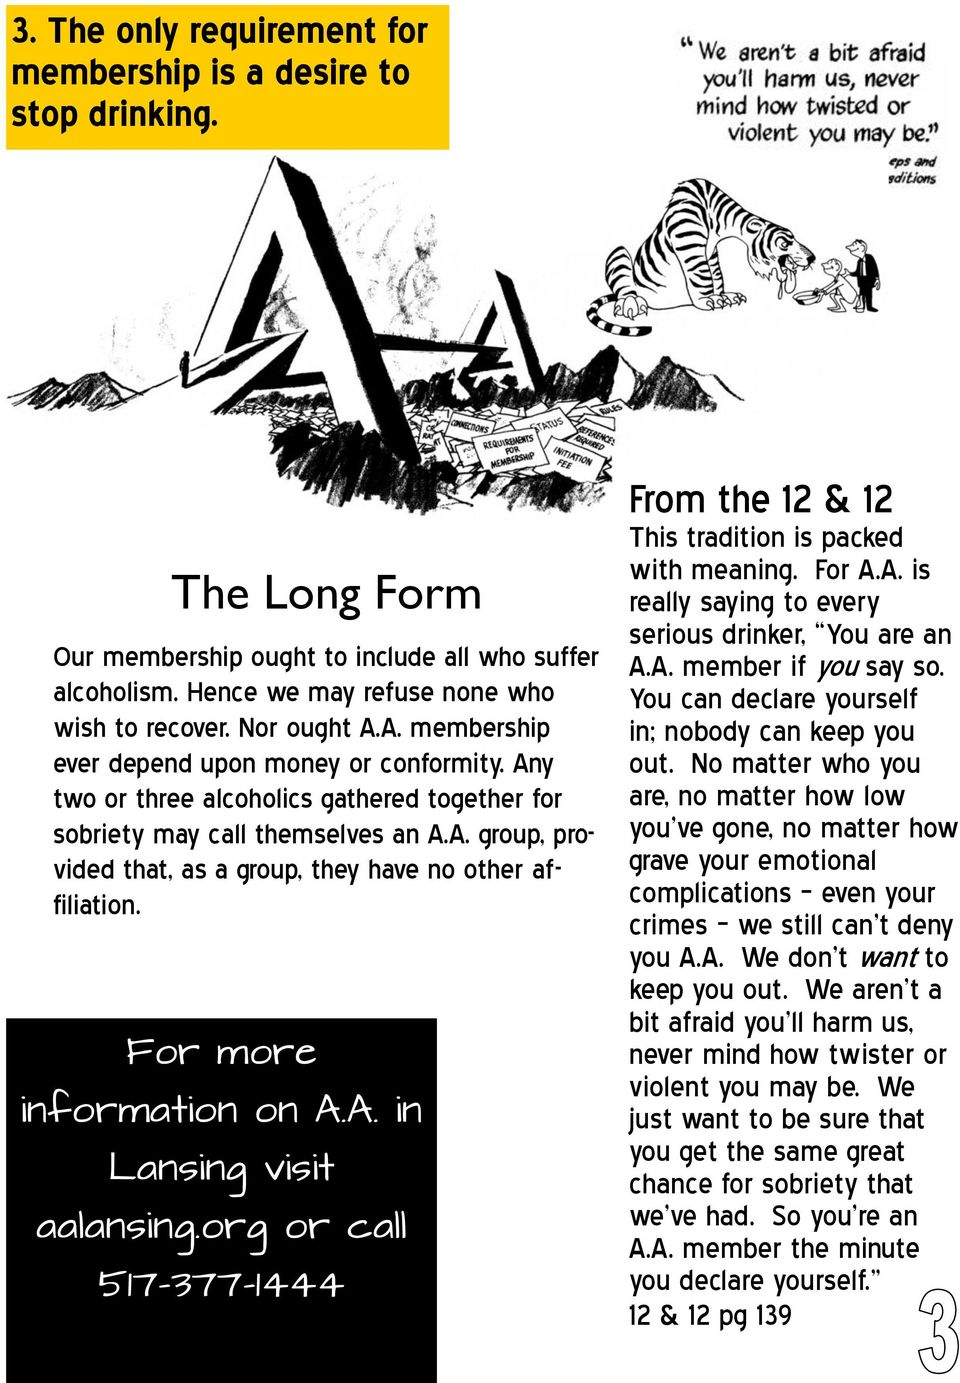 For more information on A.A. in Lansing visit aalansing.org or call 517-377-1444 From the 12 & 12 This tradition is packed with meaning. For A.A. is really saying to every serious drinker, You are an A.